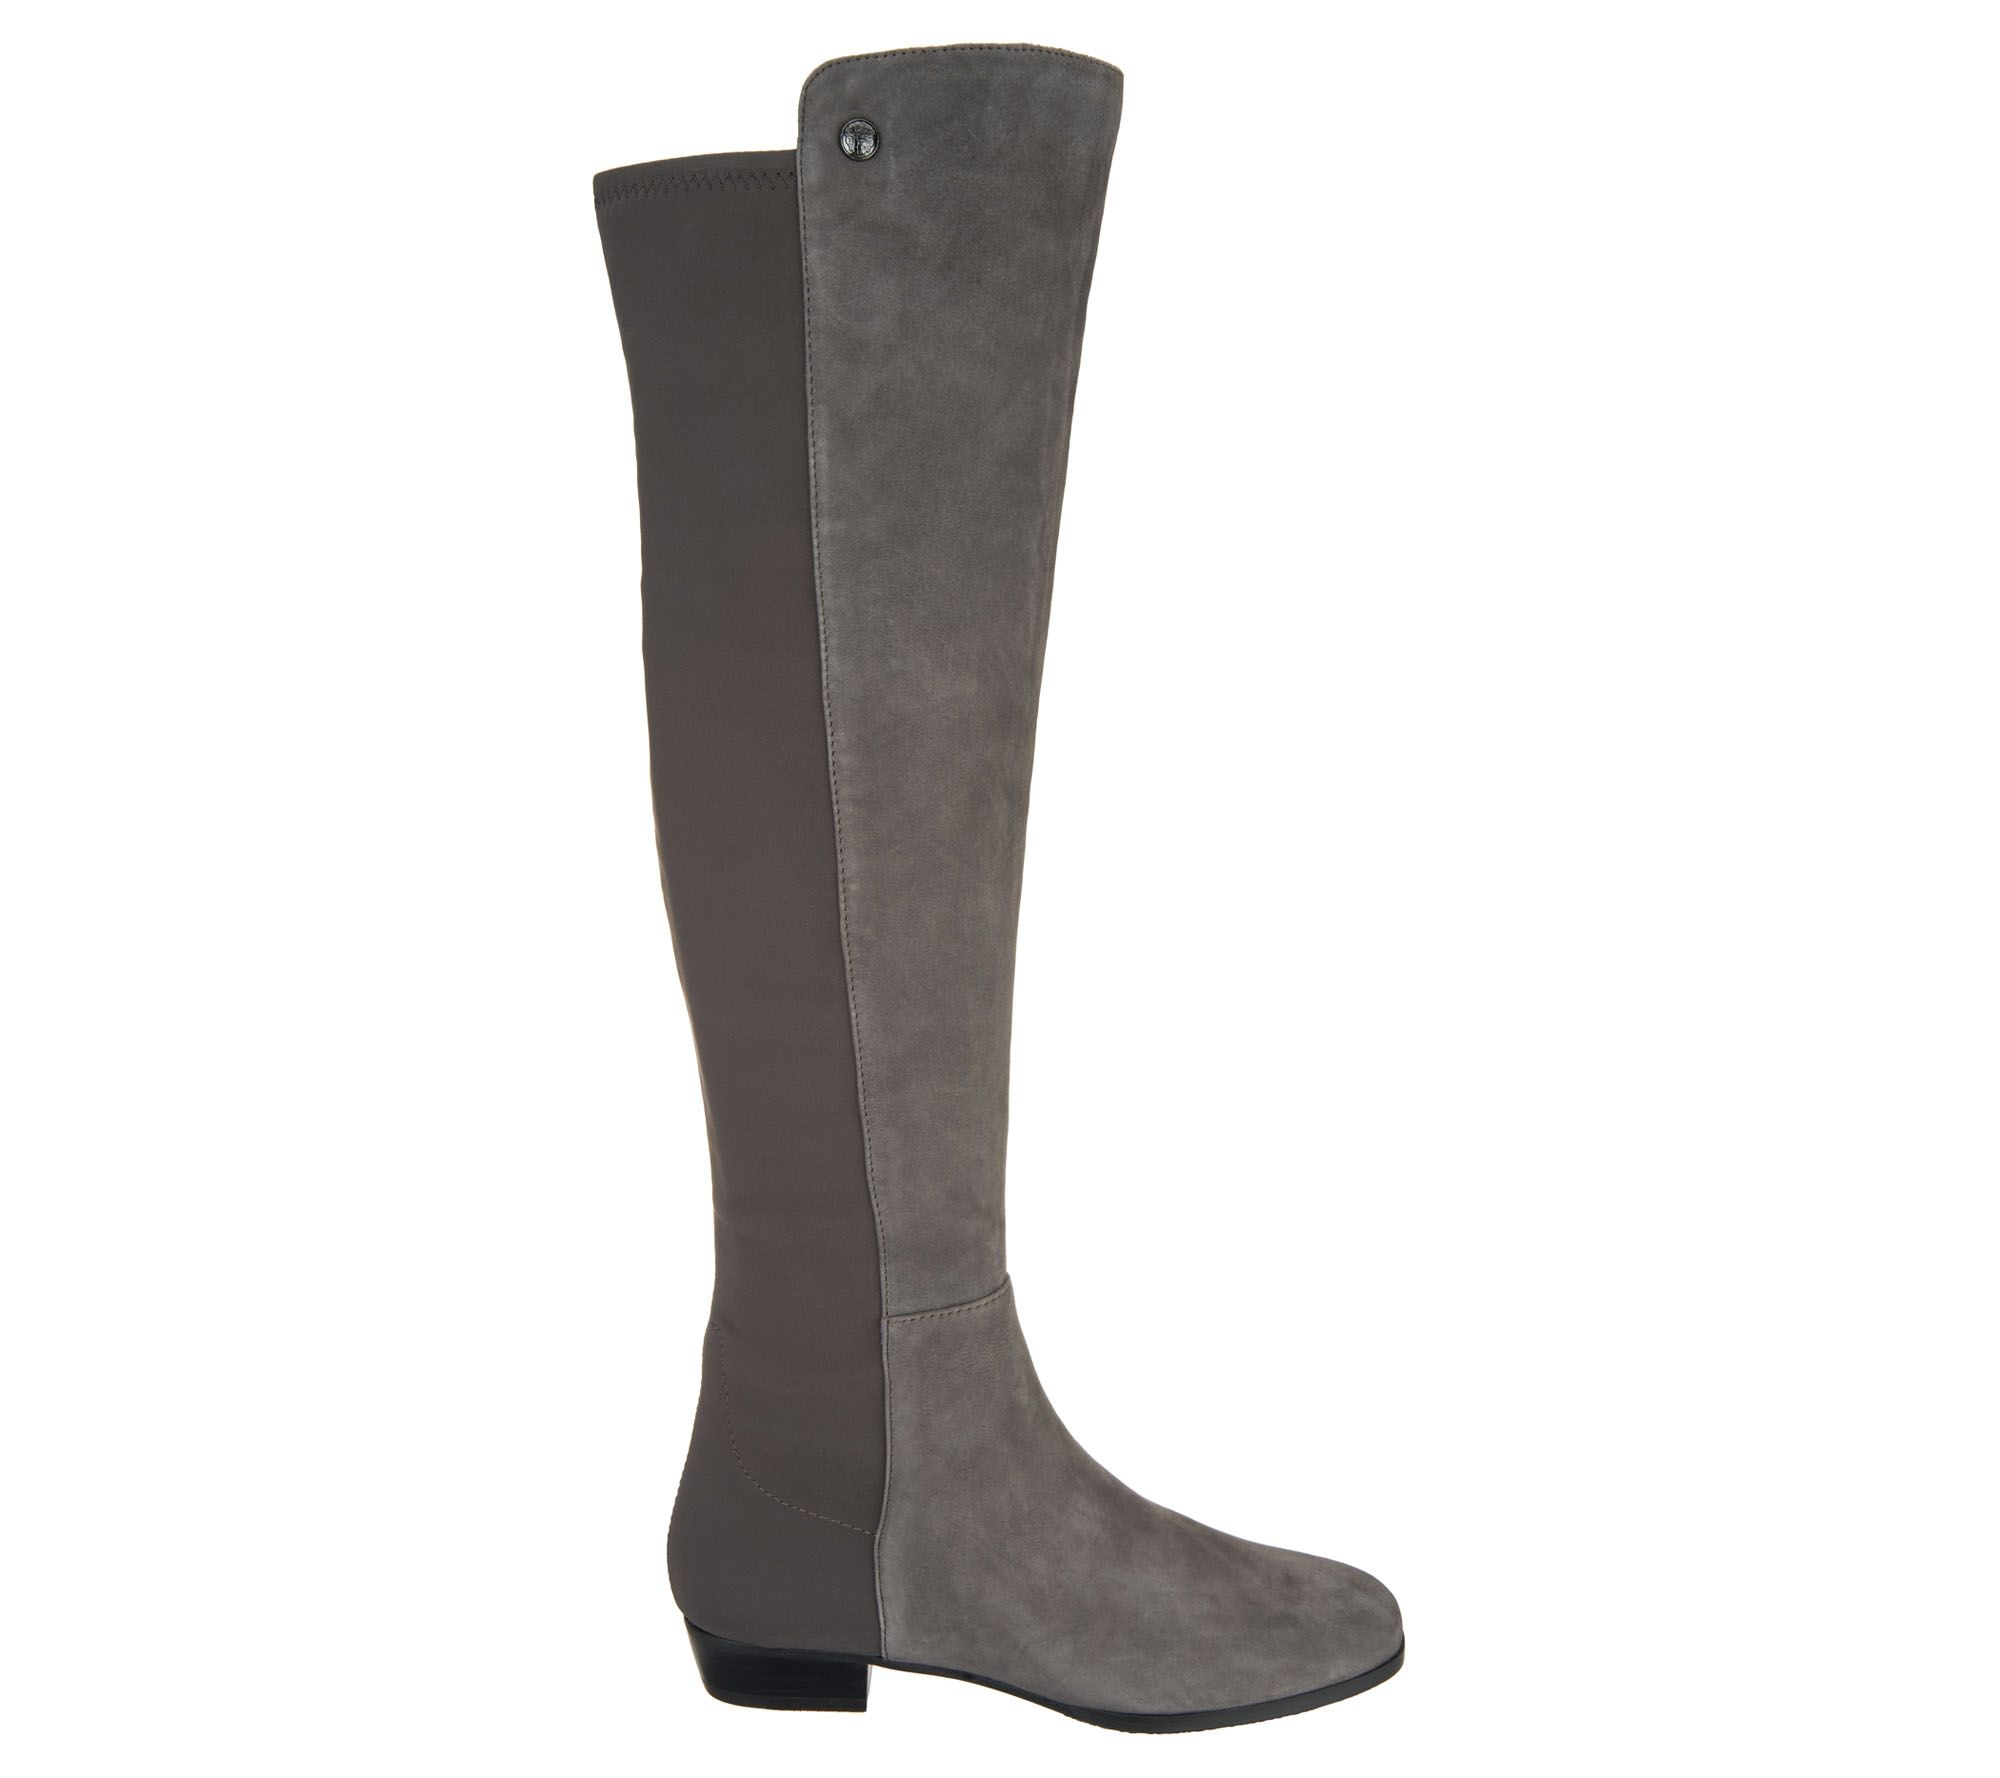 03a122df4f7 Vince Camuto Wide Calf Leather Tall Shaft Boots - Karita — QVC.com